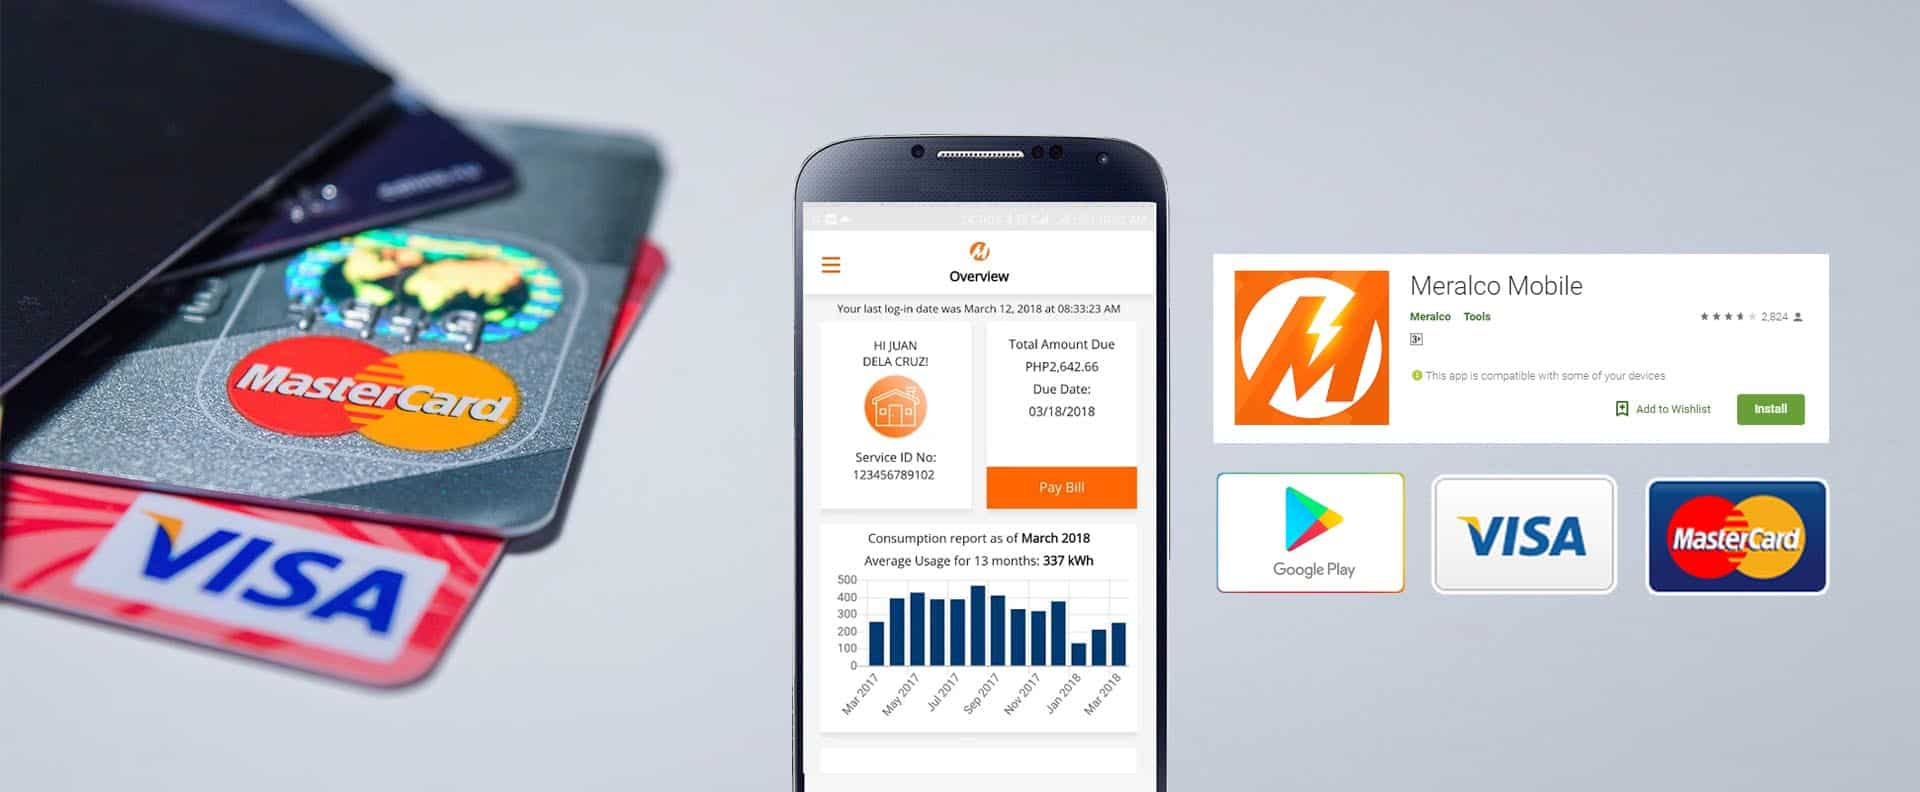 Meralco Online Payment with Credit Card